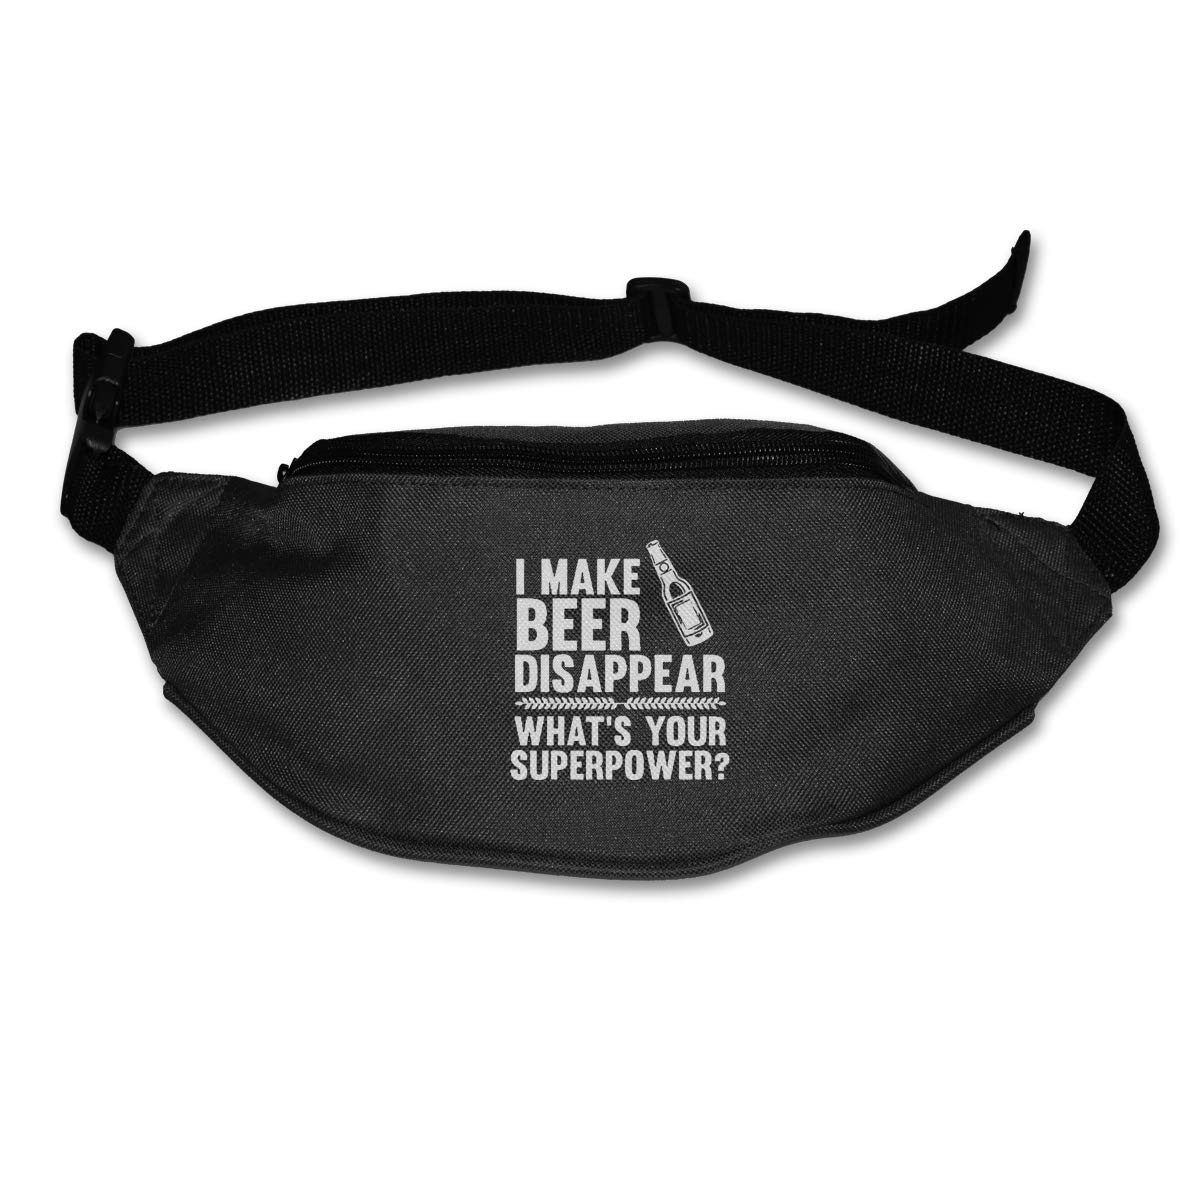 I Make Beer Disappear Whats Your Superpower Waist Packs Fanny Pack For Travel